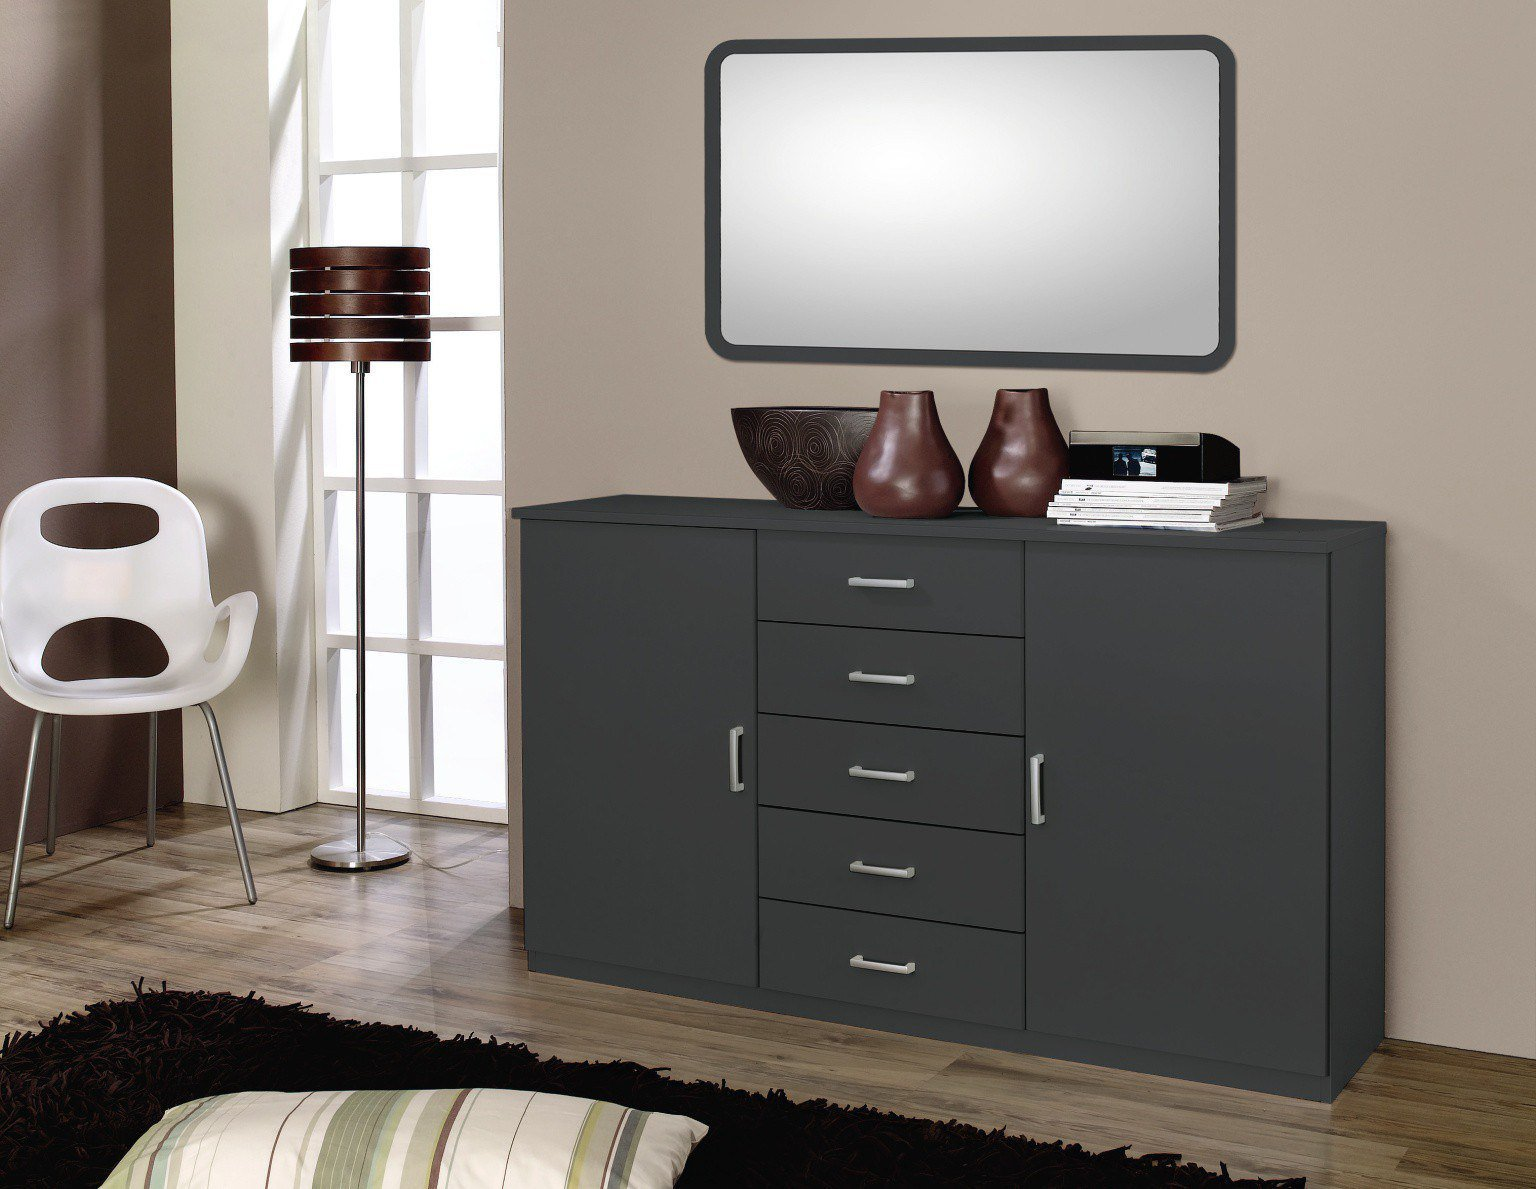 rauch quadra kommode wei m bel letz ihr online shop. Black Bedroom Furniture Sets. Home Design Ideas